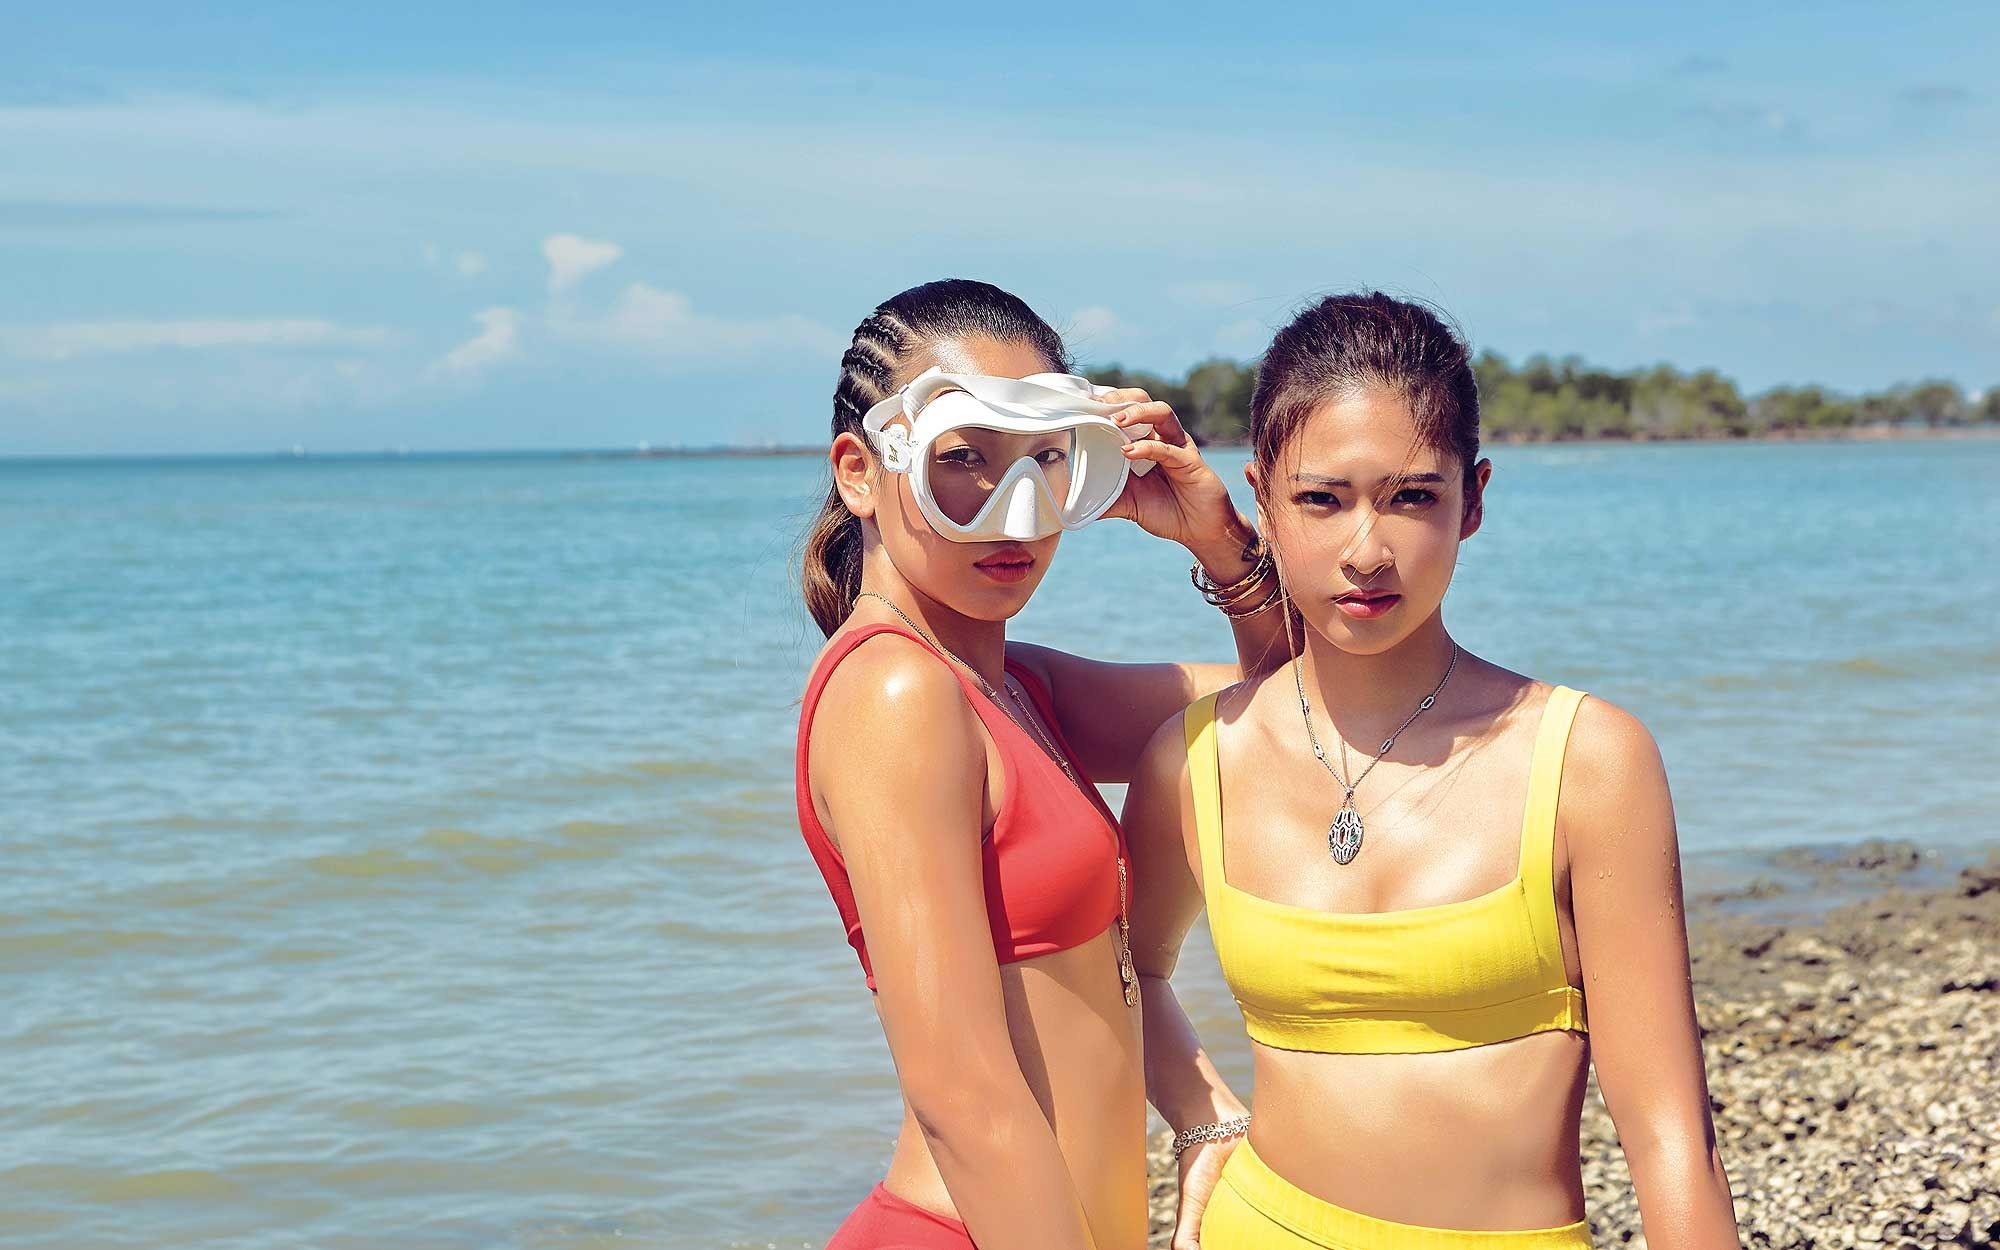 Cover Story: Teo Yi Ping and Bella Kuan On How Travel Has Strengthened Their Friendship